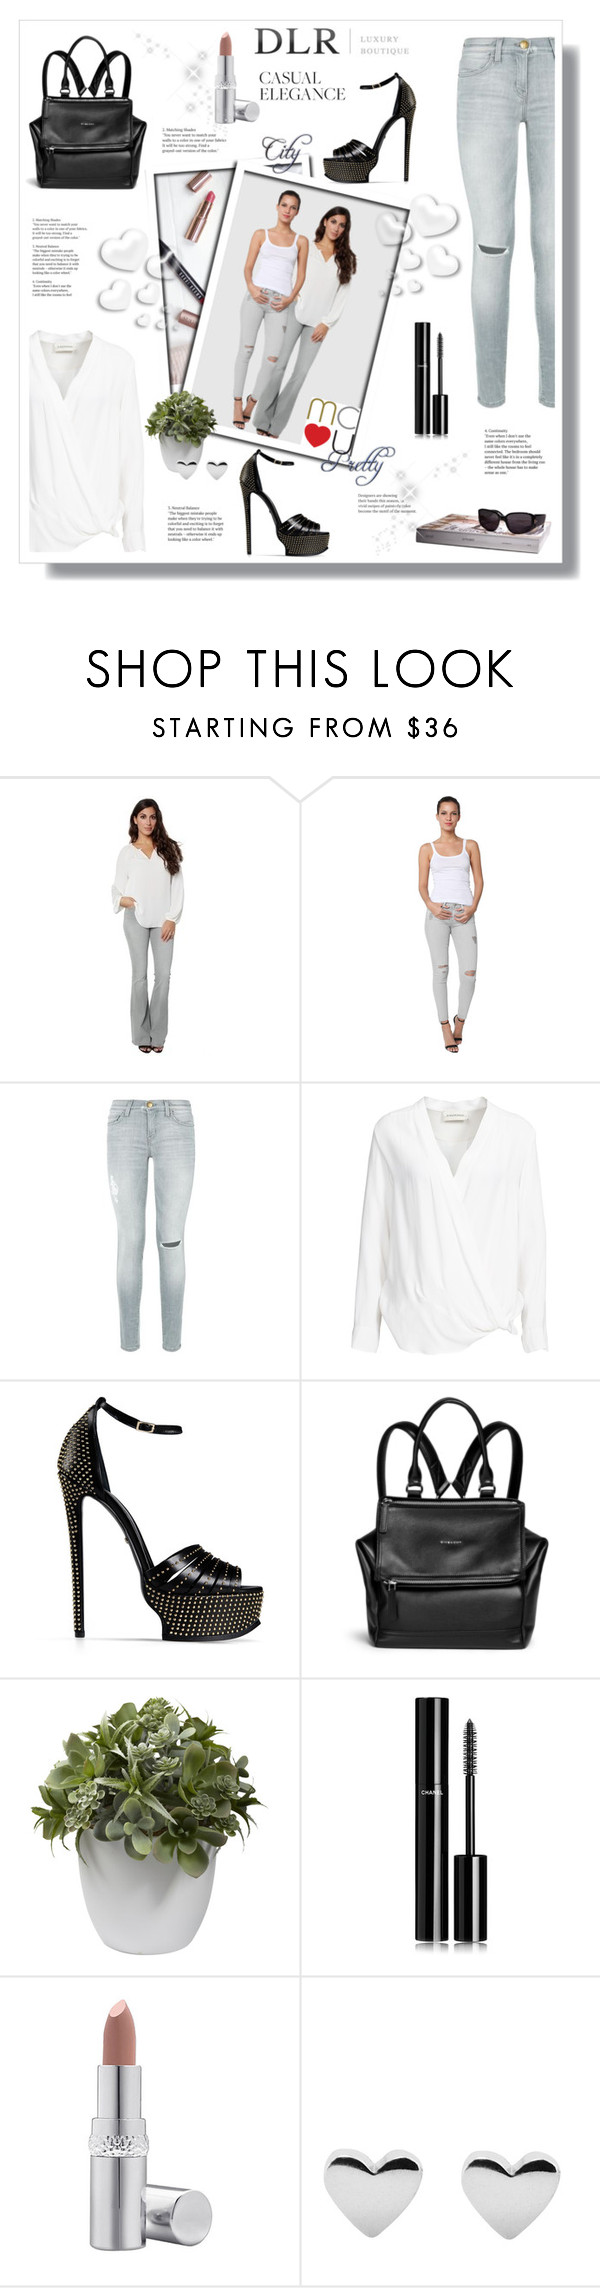 """""""dlr"""" by stranjakivana ❤ liked on Polyvore featuring Diane Von Furstenberg, AG Adriano Goldschmied, Current/Elliott, By Malene Birger, Roberto Cavalli, Givenchy, Nearly Natural, Chanel, La Prairie and Valentino"""